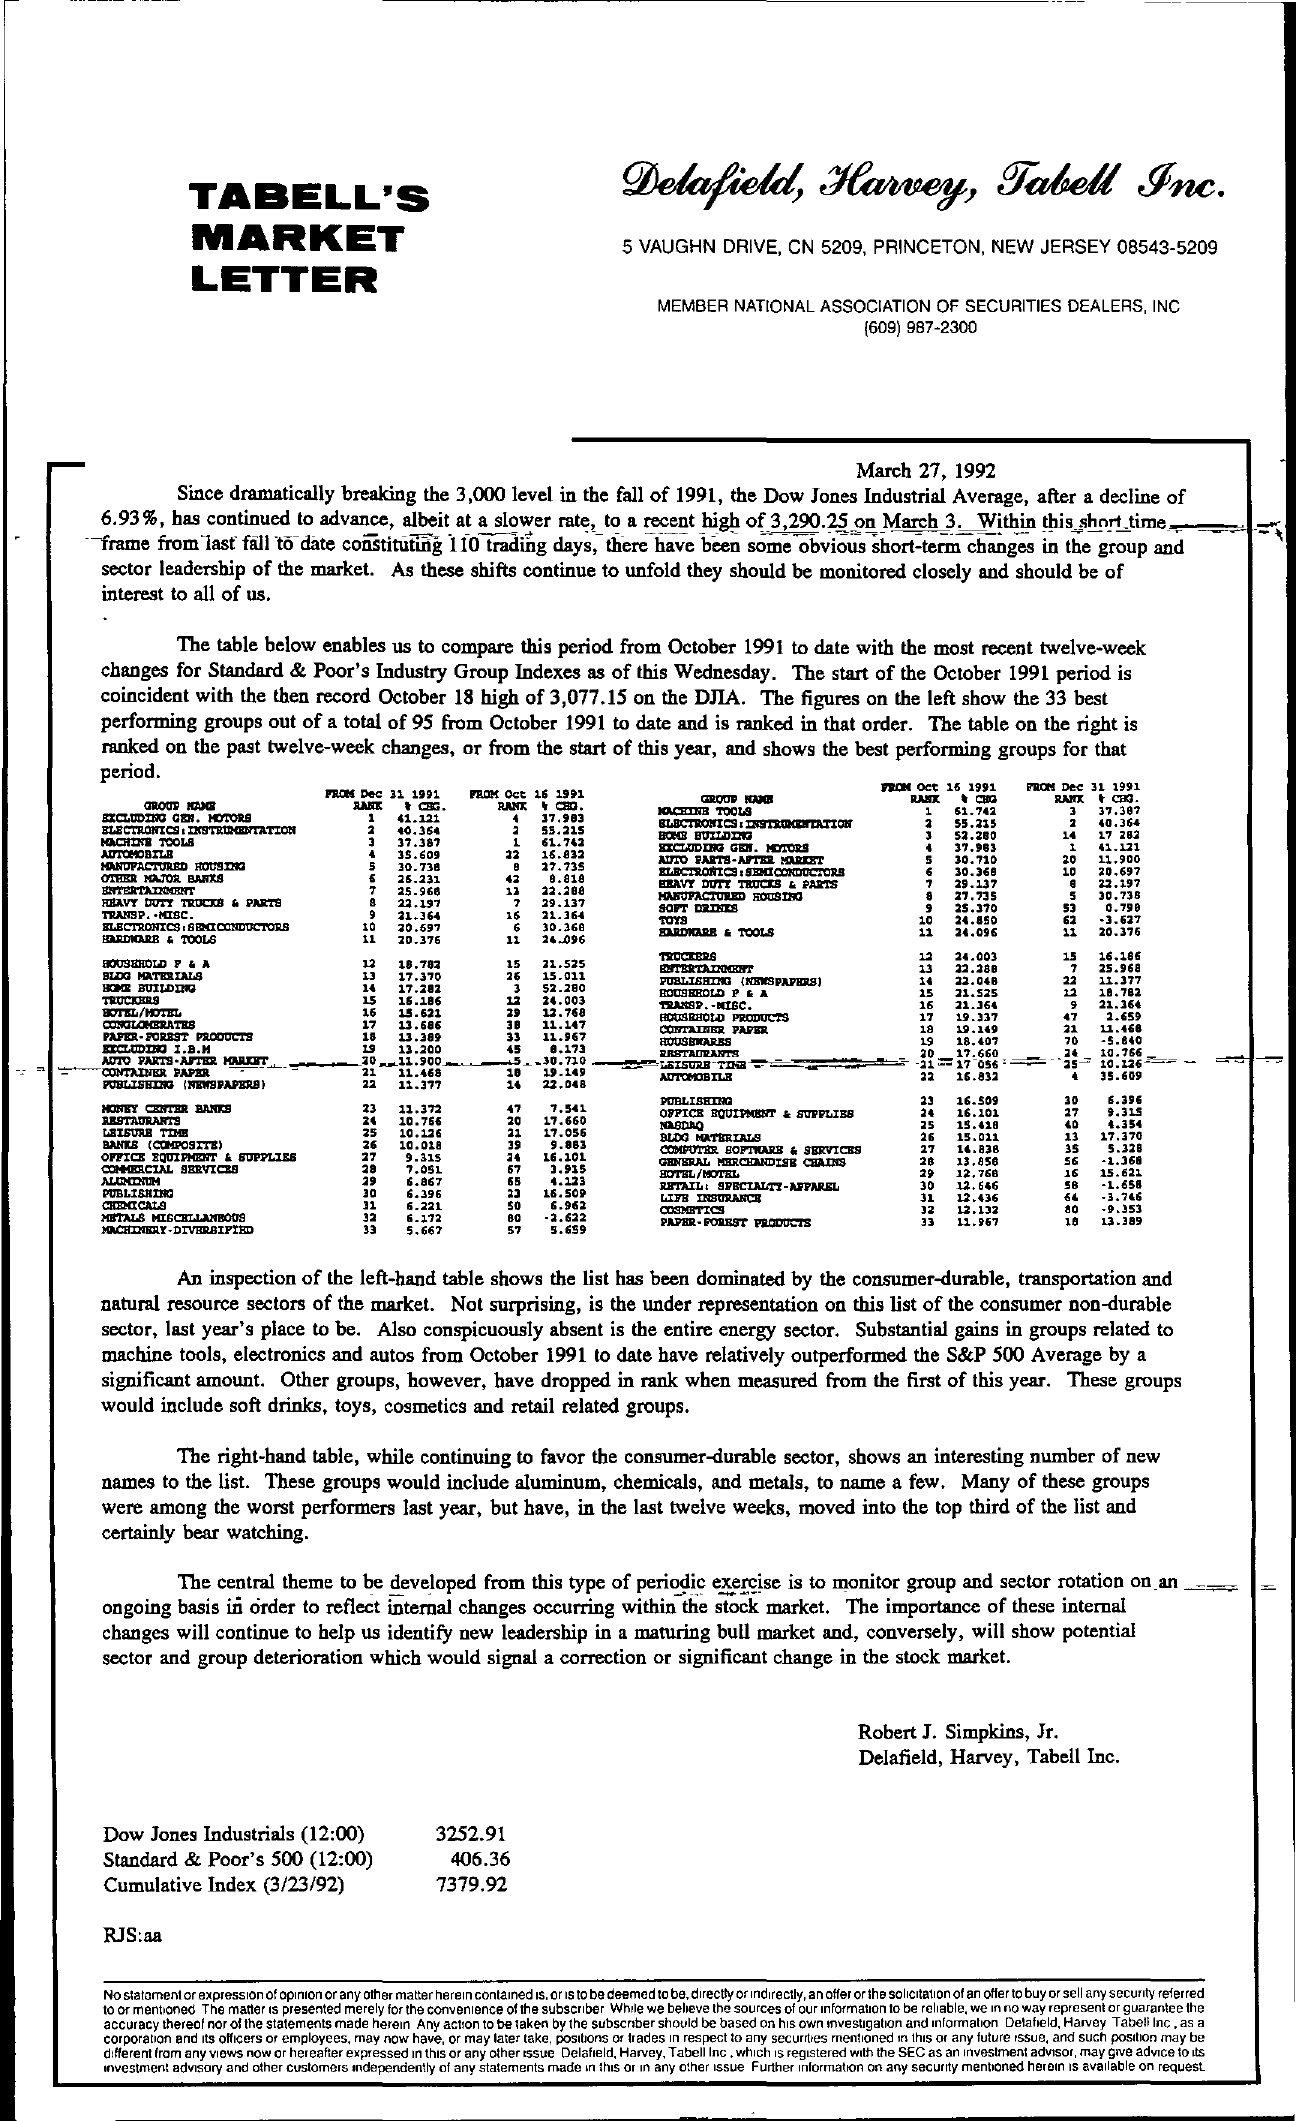 Tabell's Market Letter - March 27, 1992